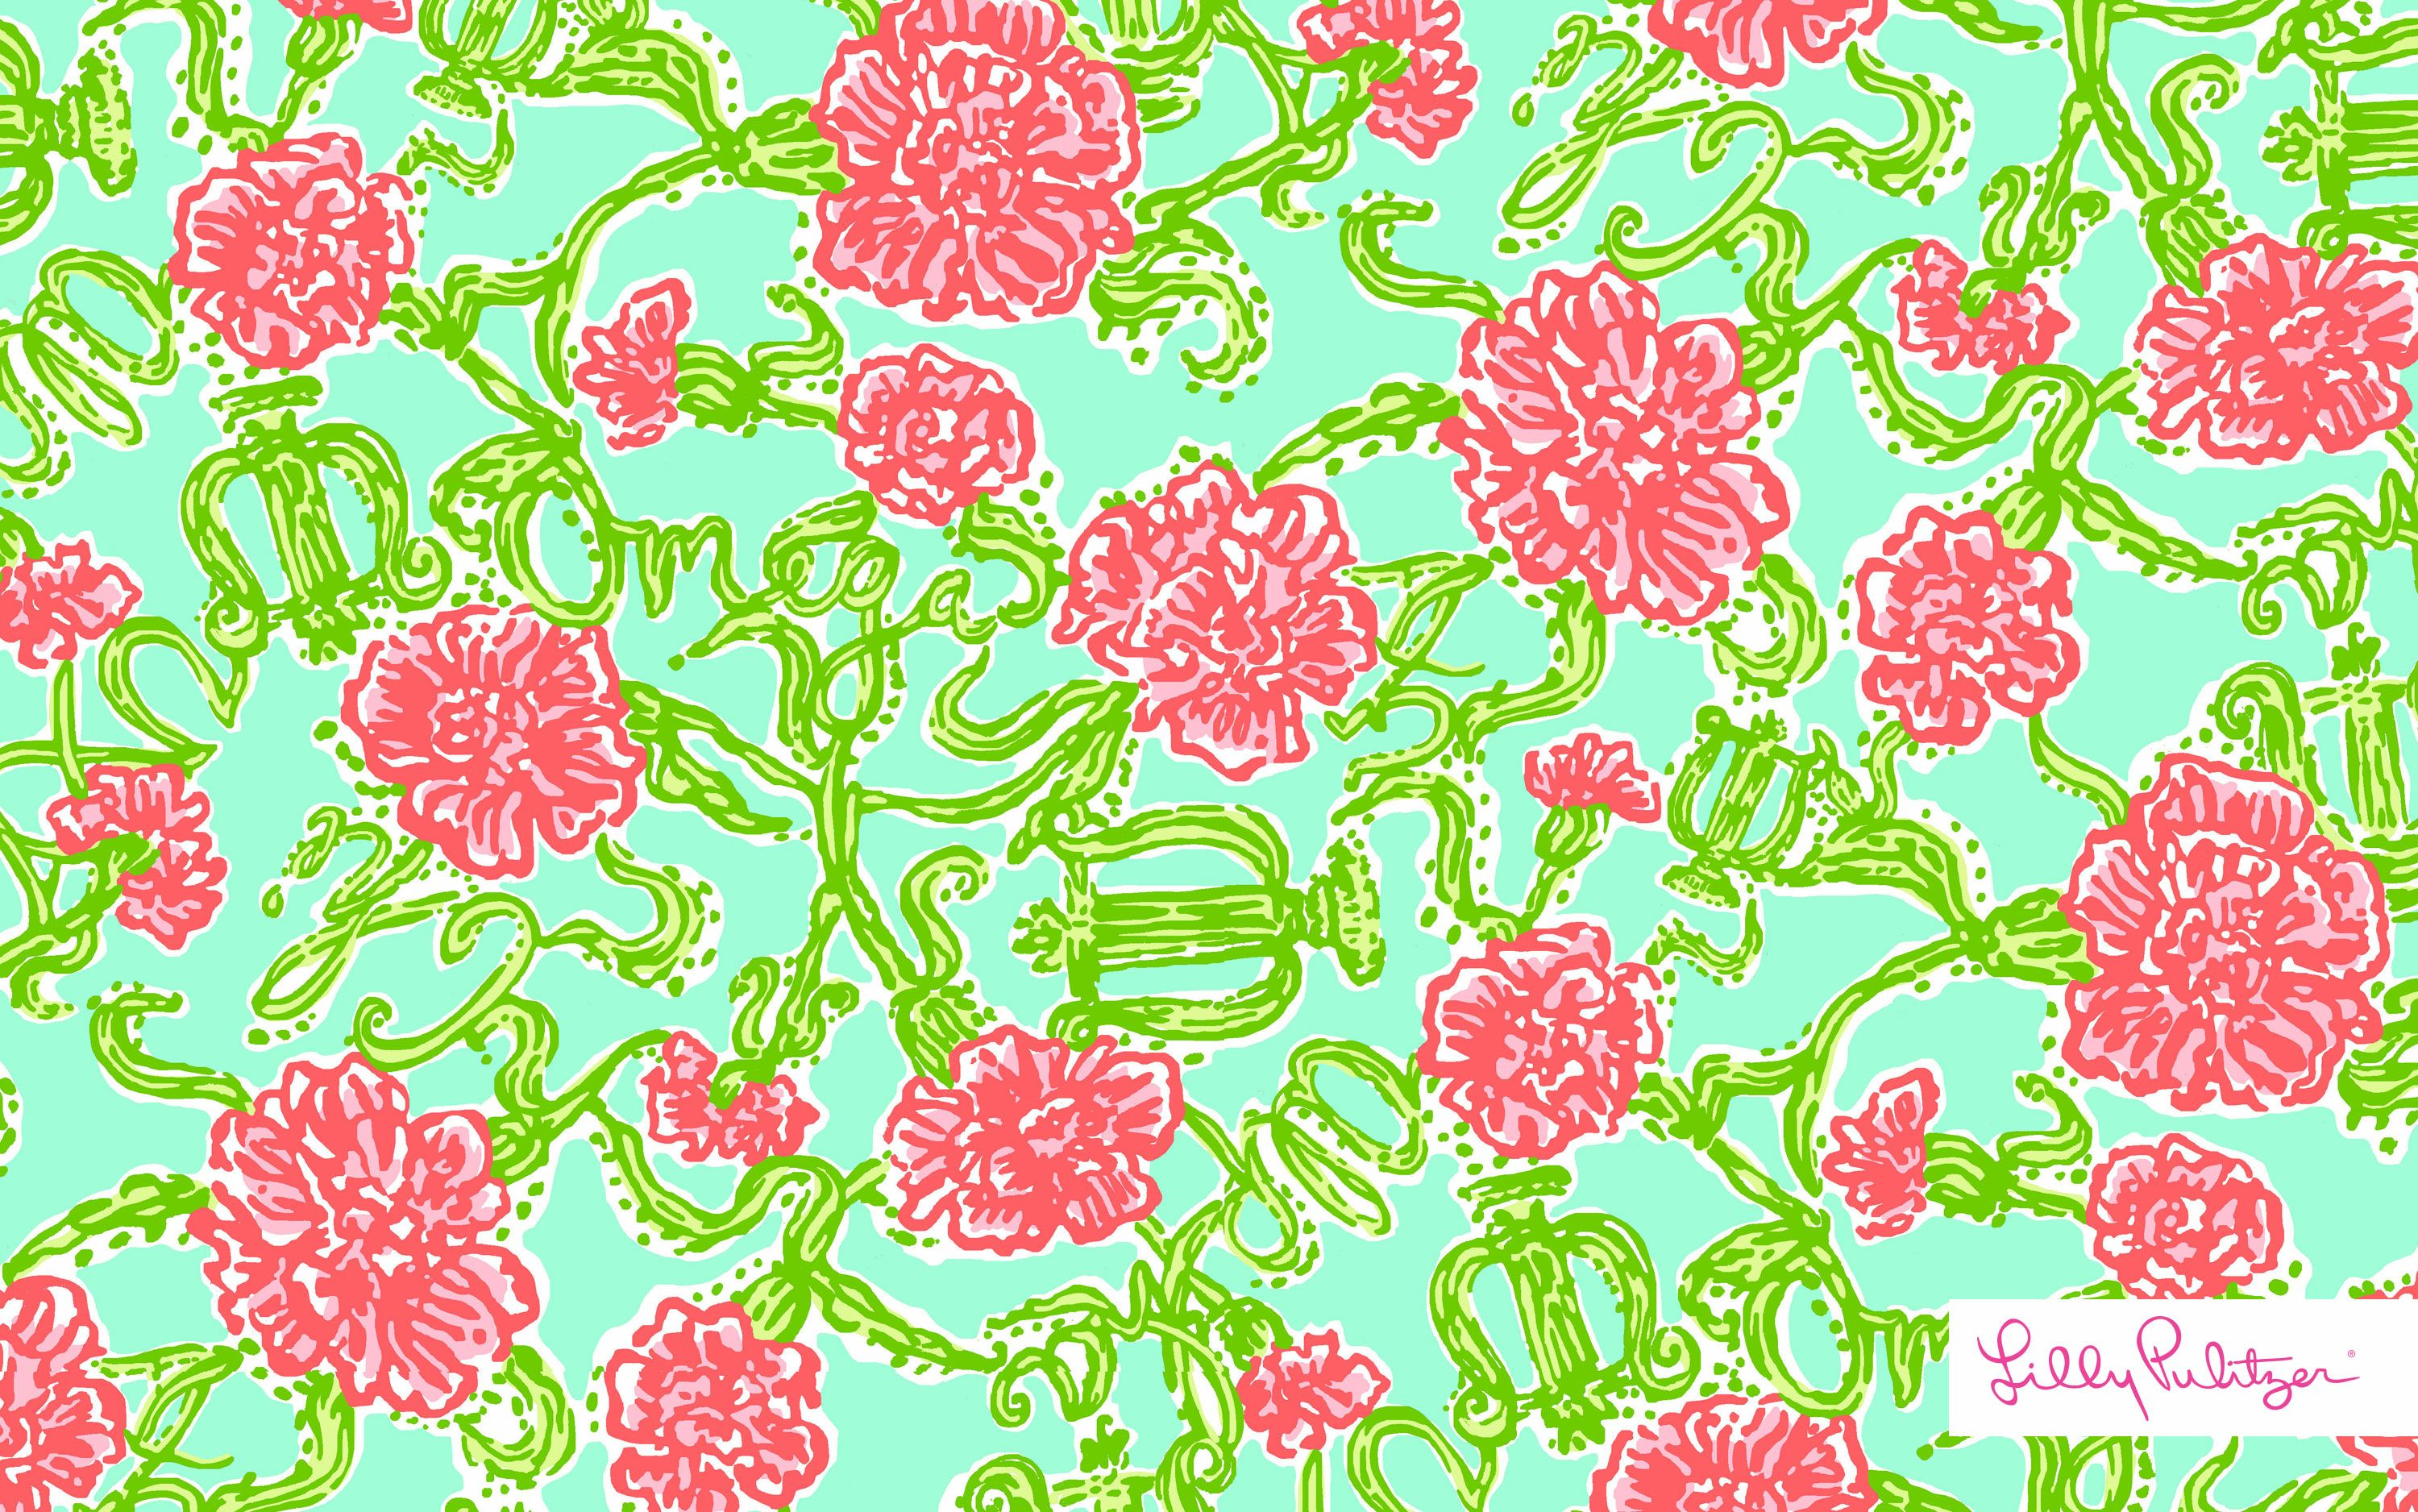 9d19d699b0aa95 Lilly Pulitzer - Alpha Chi Omega Print! Finally!! #lilly #axo  #alphachiomega #lillylovesaxo #lillypulitzer